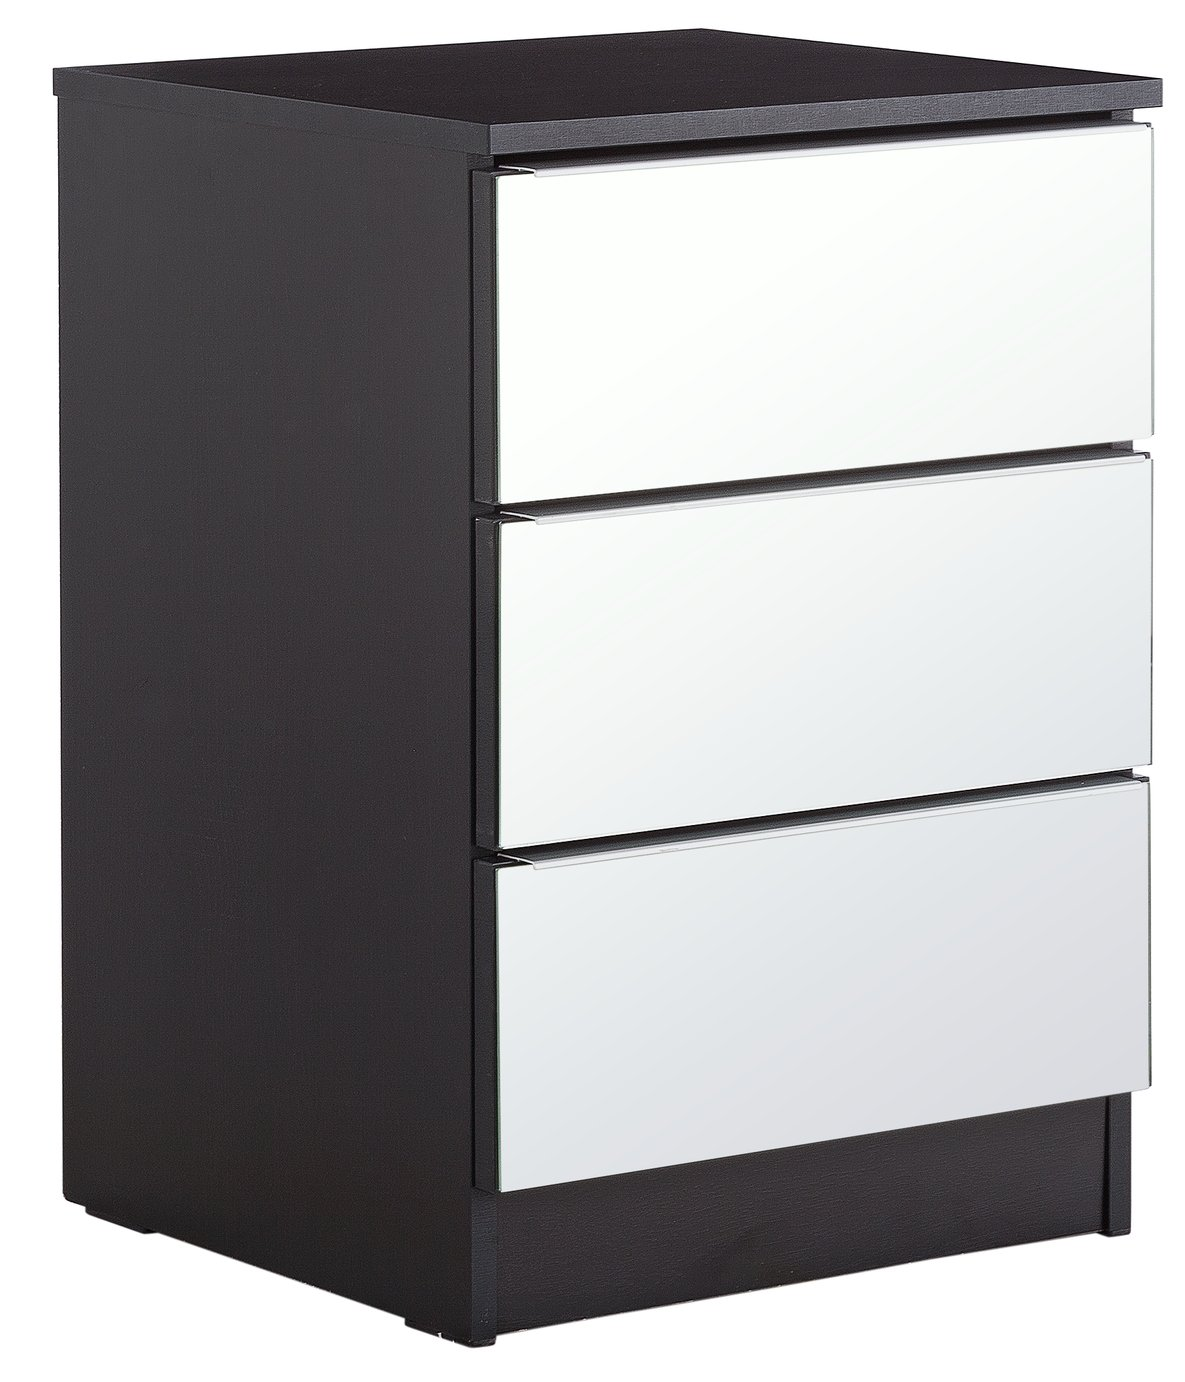 mirrored bedside table. home sandon 3 drawer bedside chest - black and mirrored table